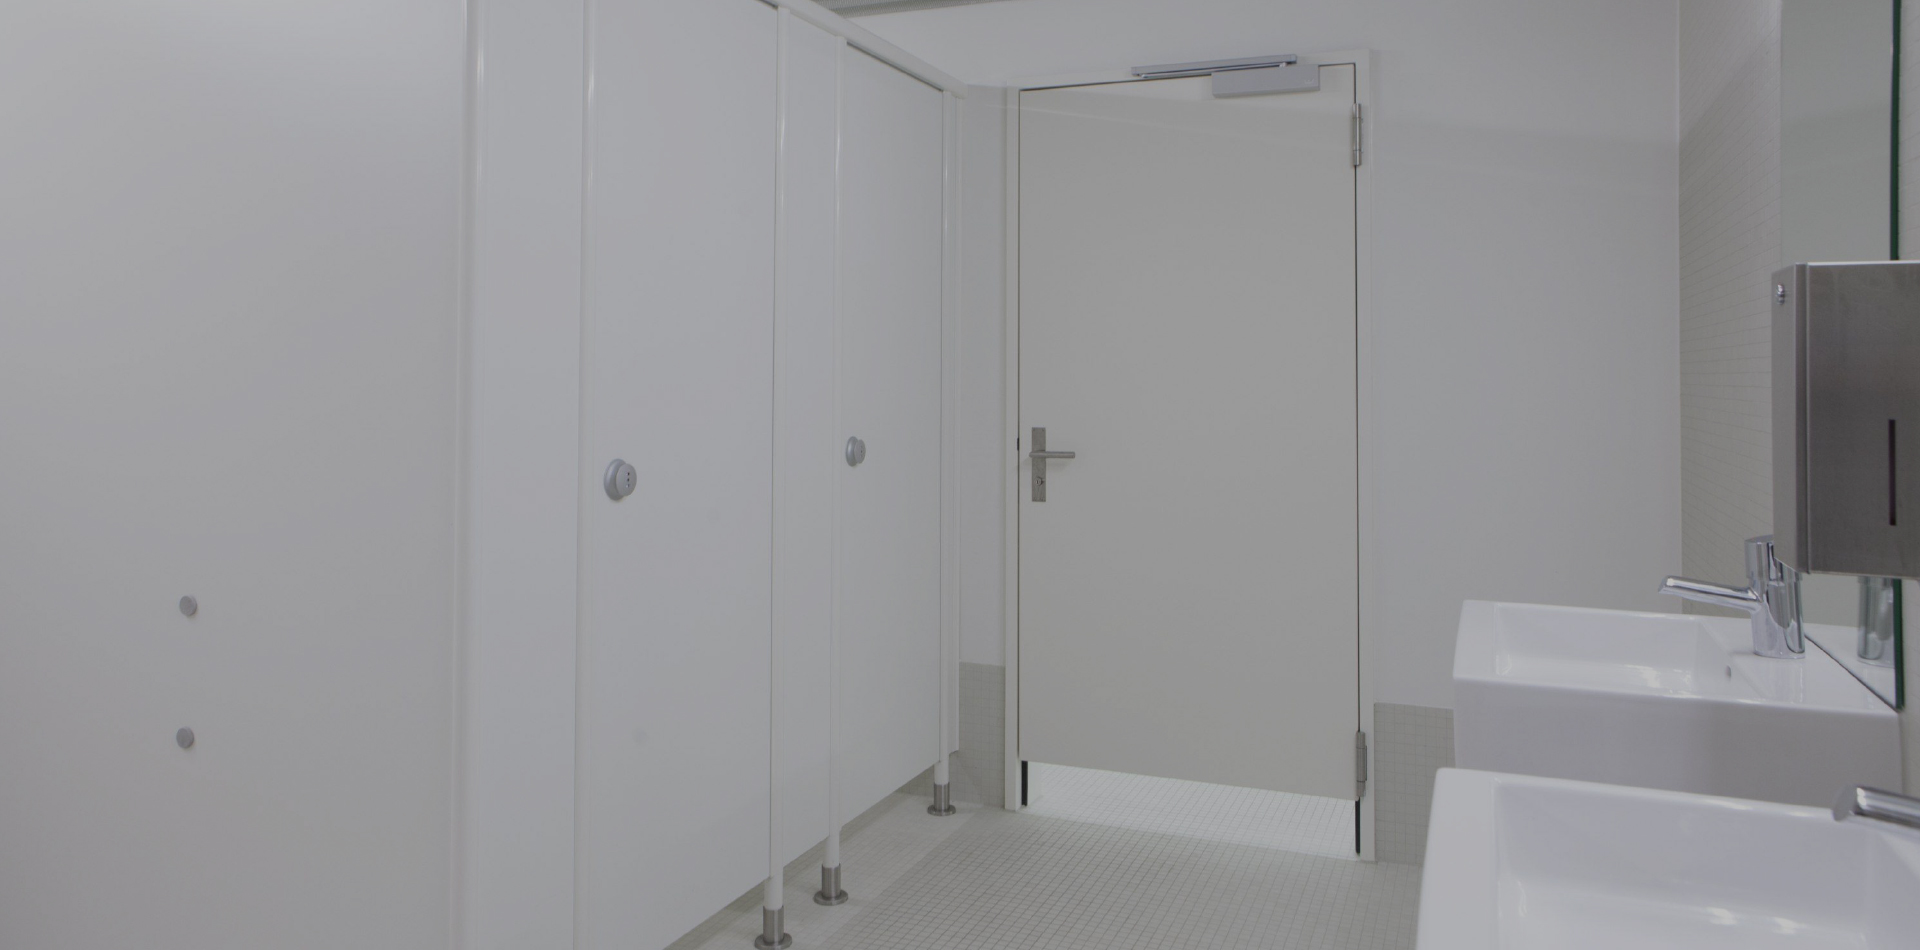 White themed restroom facility with sinks